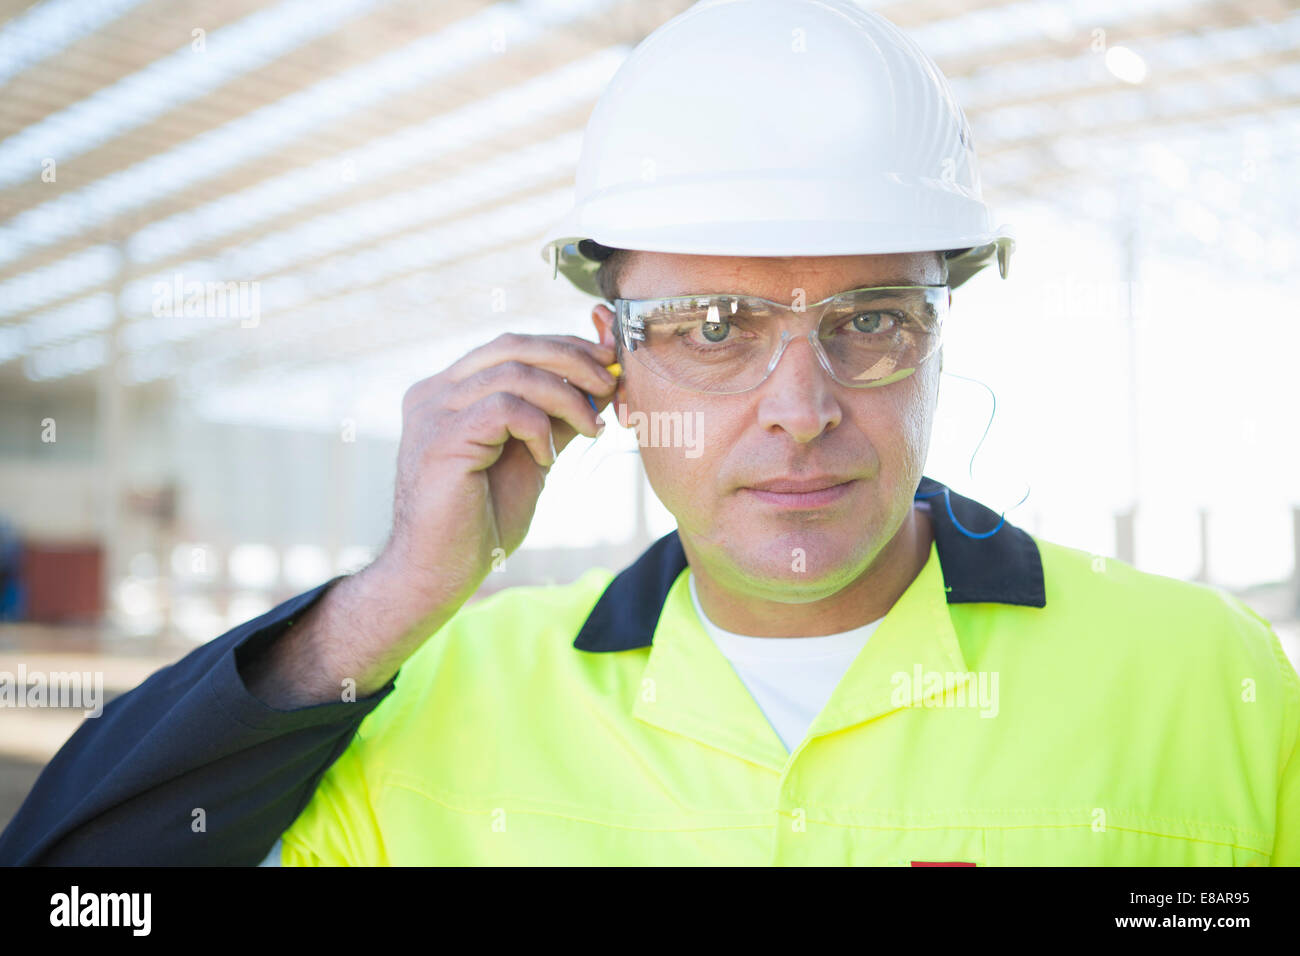 Builder with safety glasses inserting earplugs on construction site - Stock Image